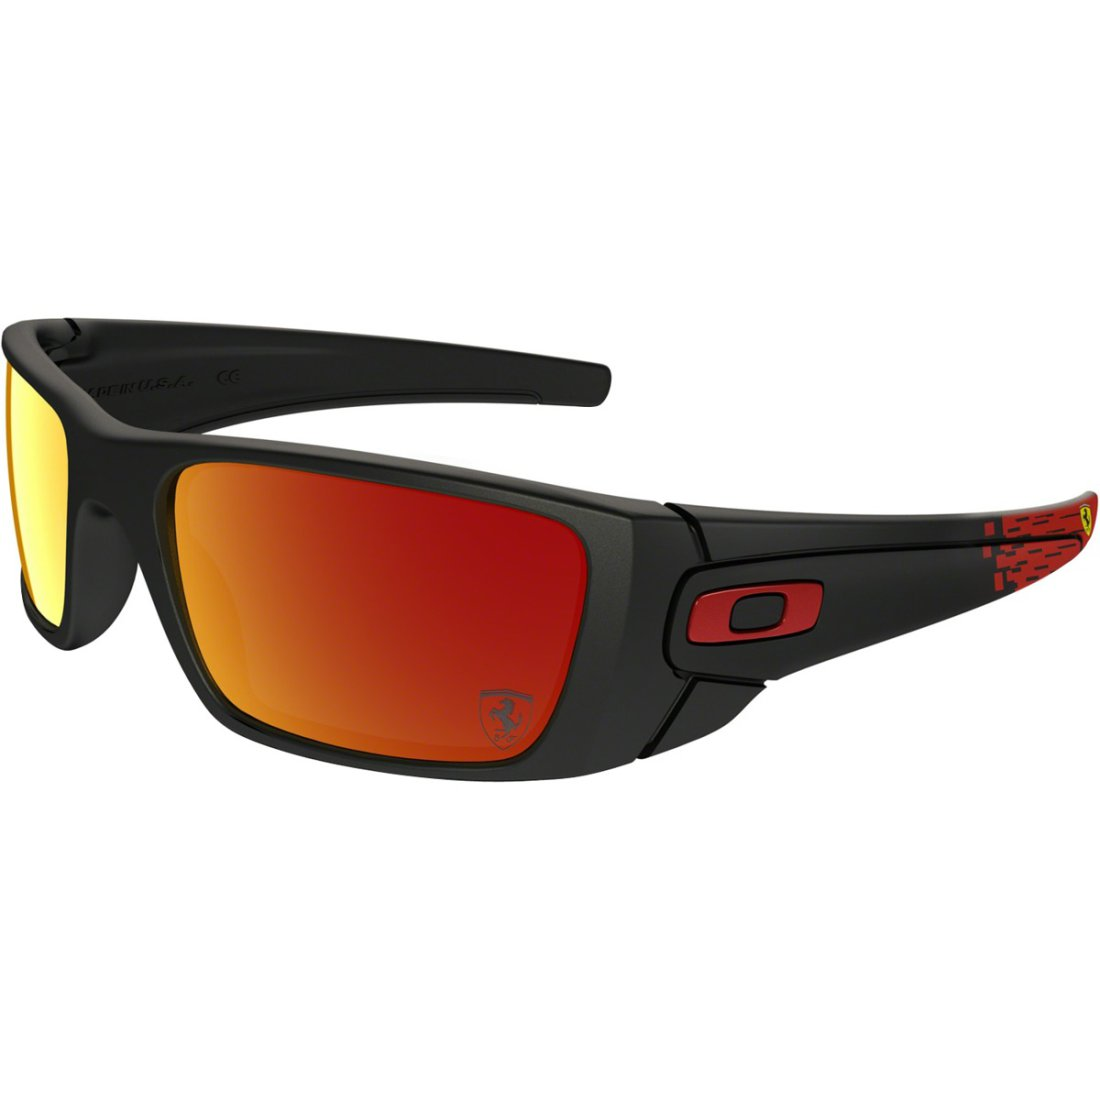 Ruby Matte Cell Gafas Oakley Sol Black Iridium Scuderia De Ferrari Collection Fuel JcFTK1l